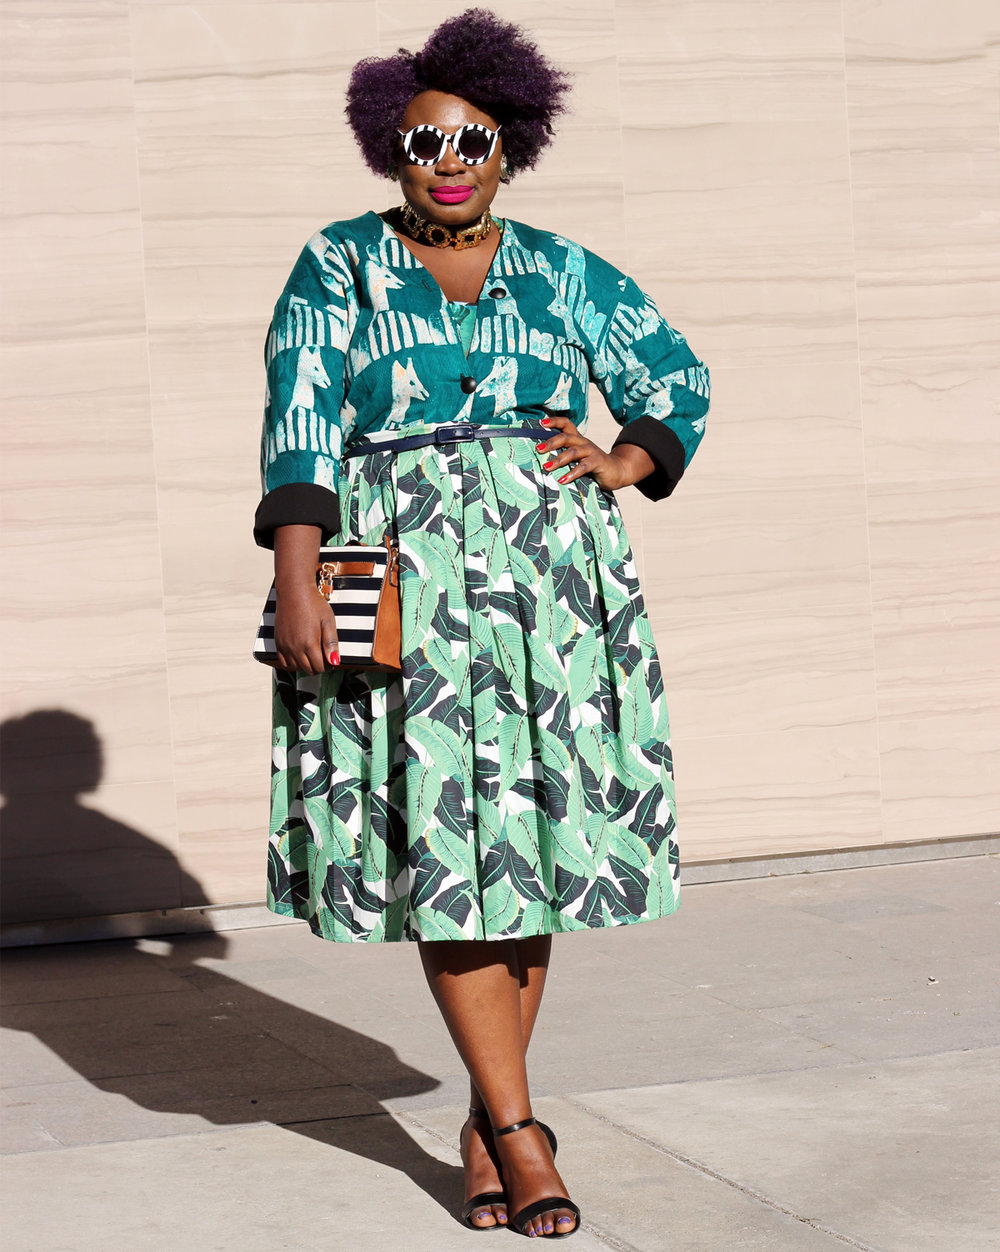 plus-size-style-fashion-week-outfit-fashion-week-street-style-01.jpg